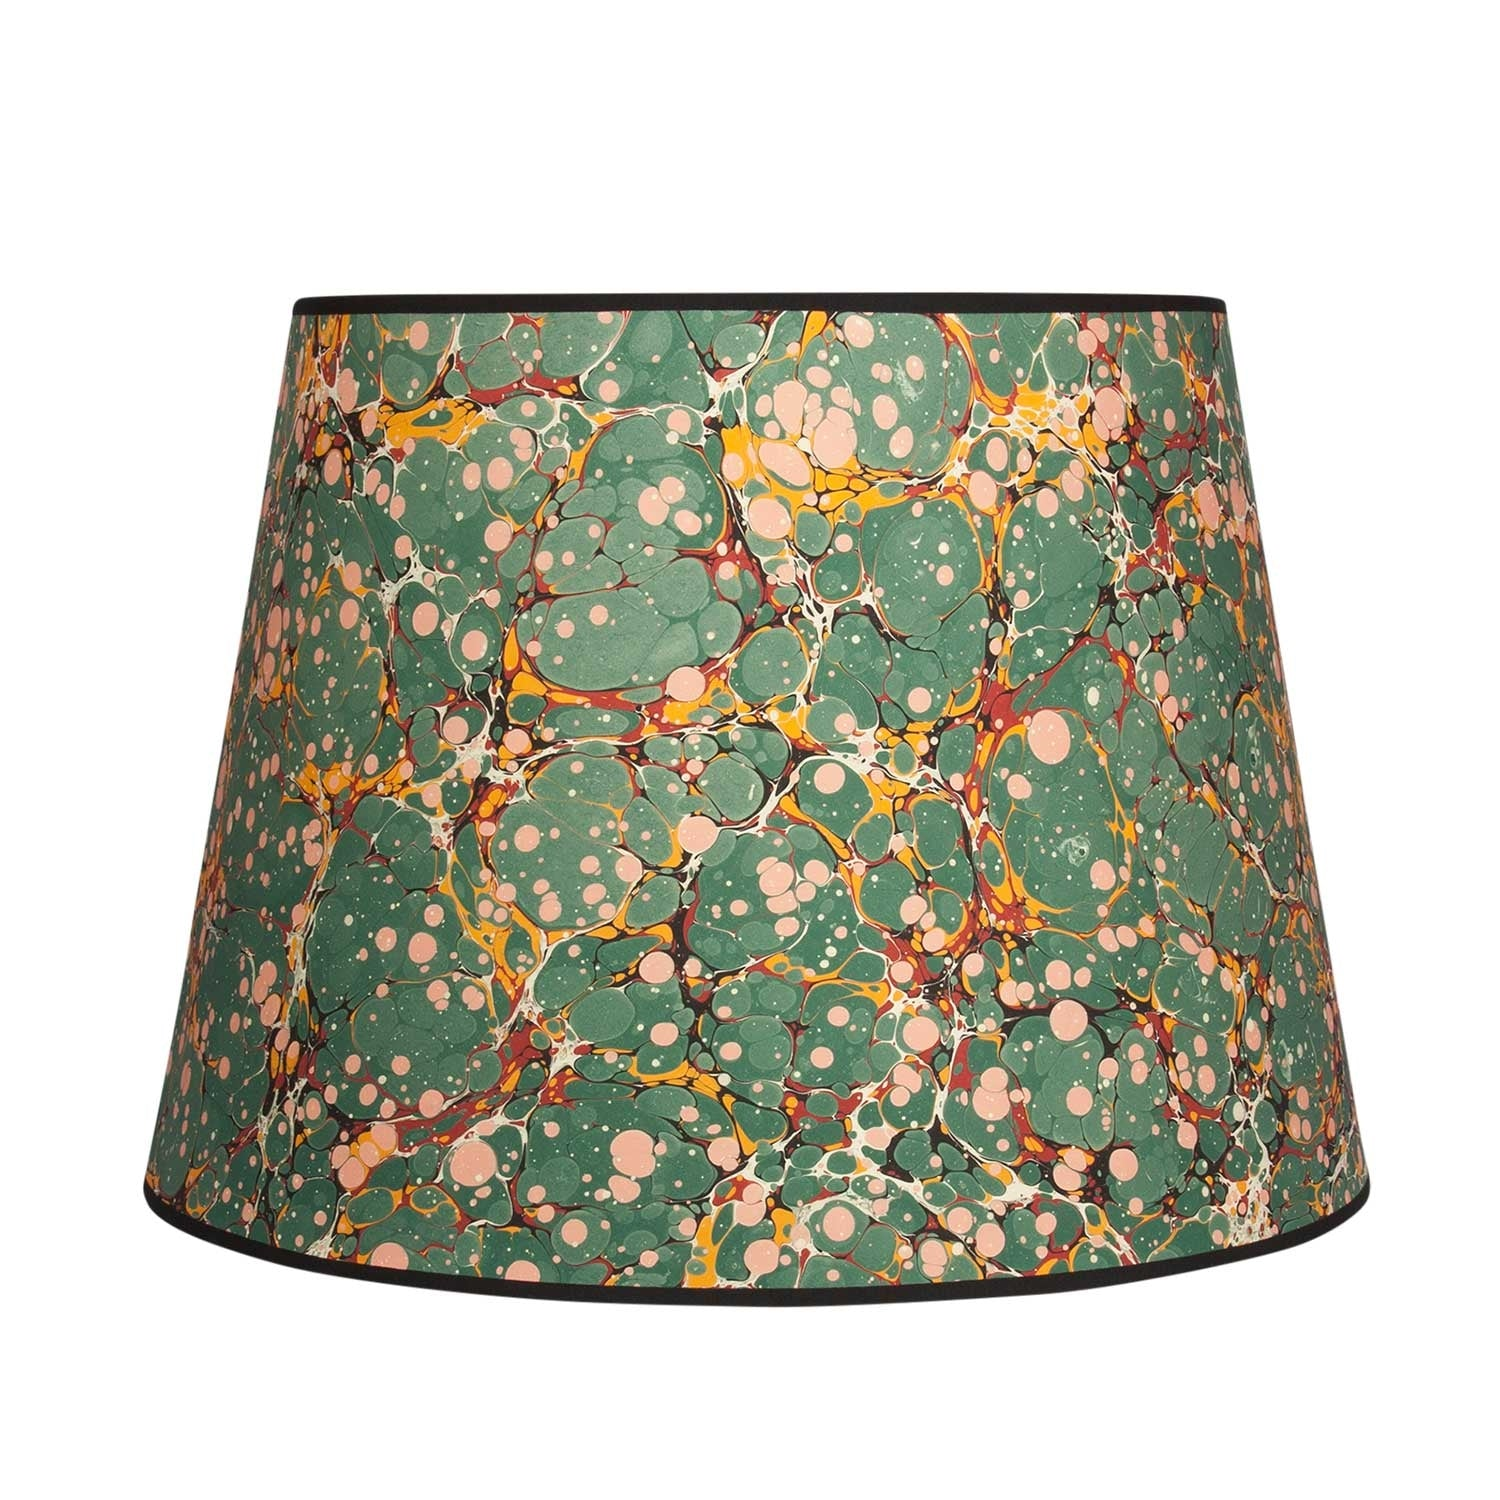 "Antique Spot - 16"" Green Lampshade"